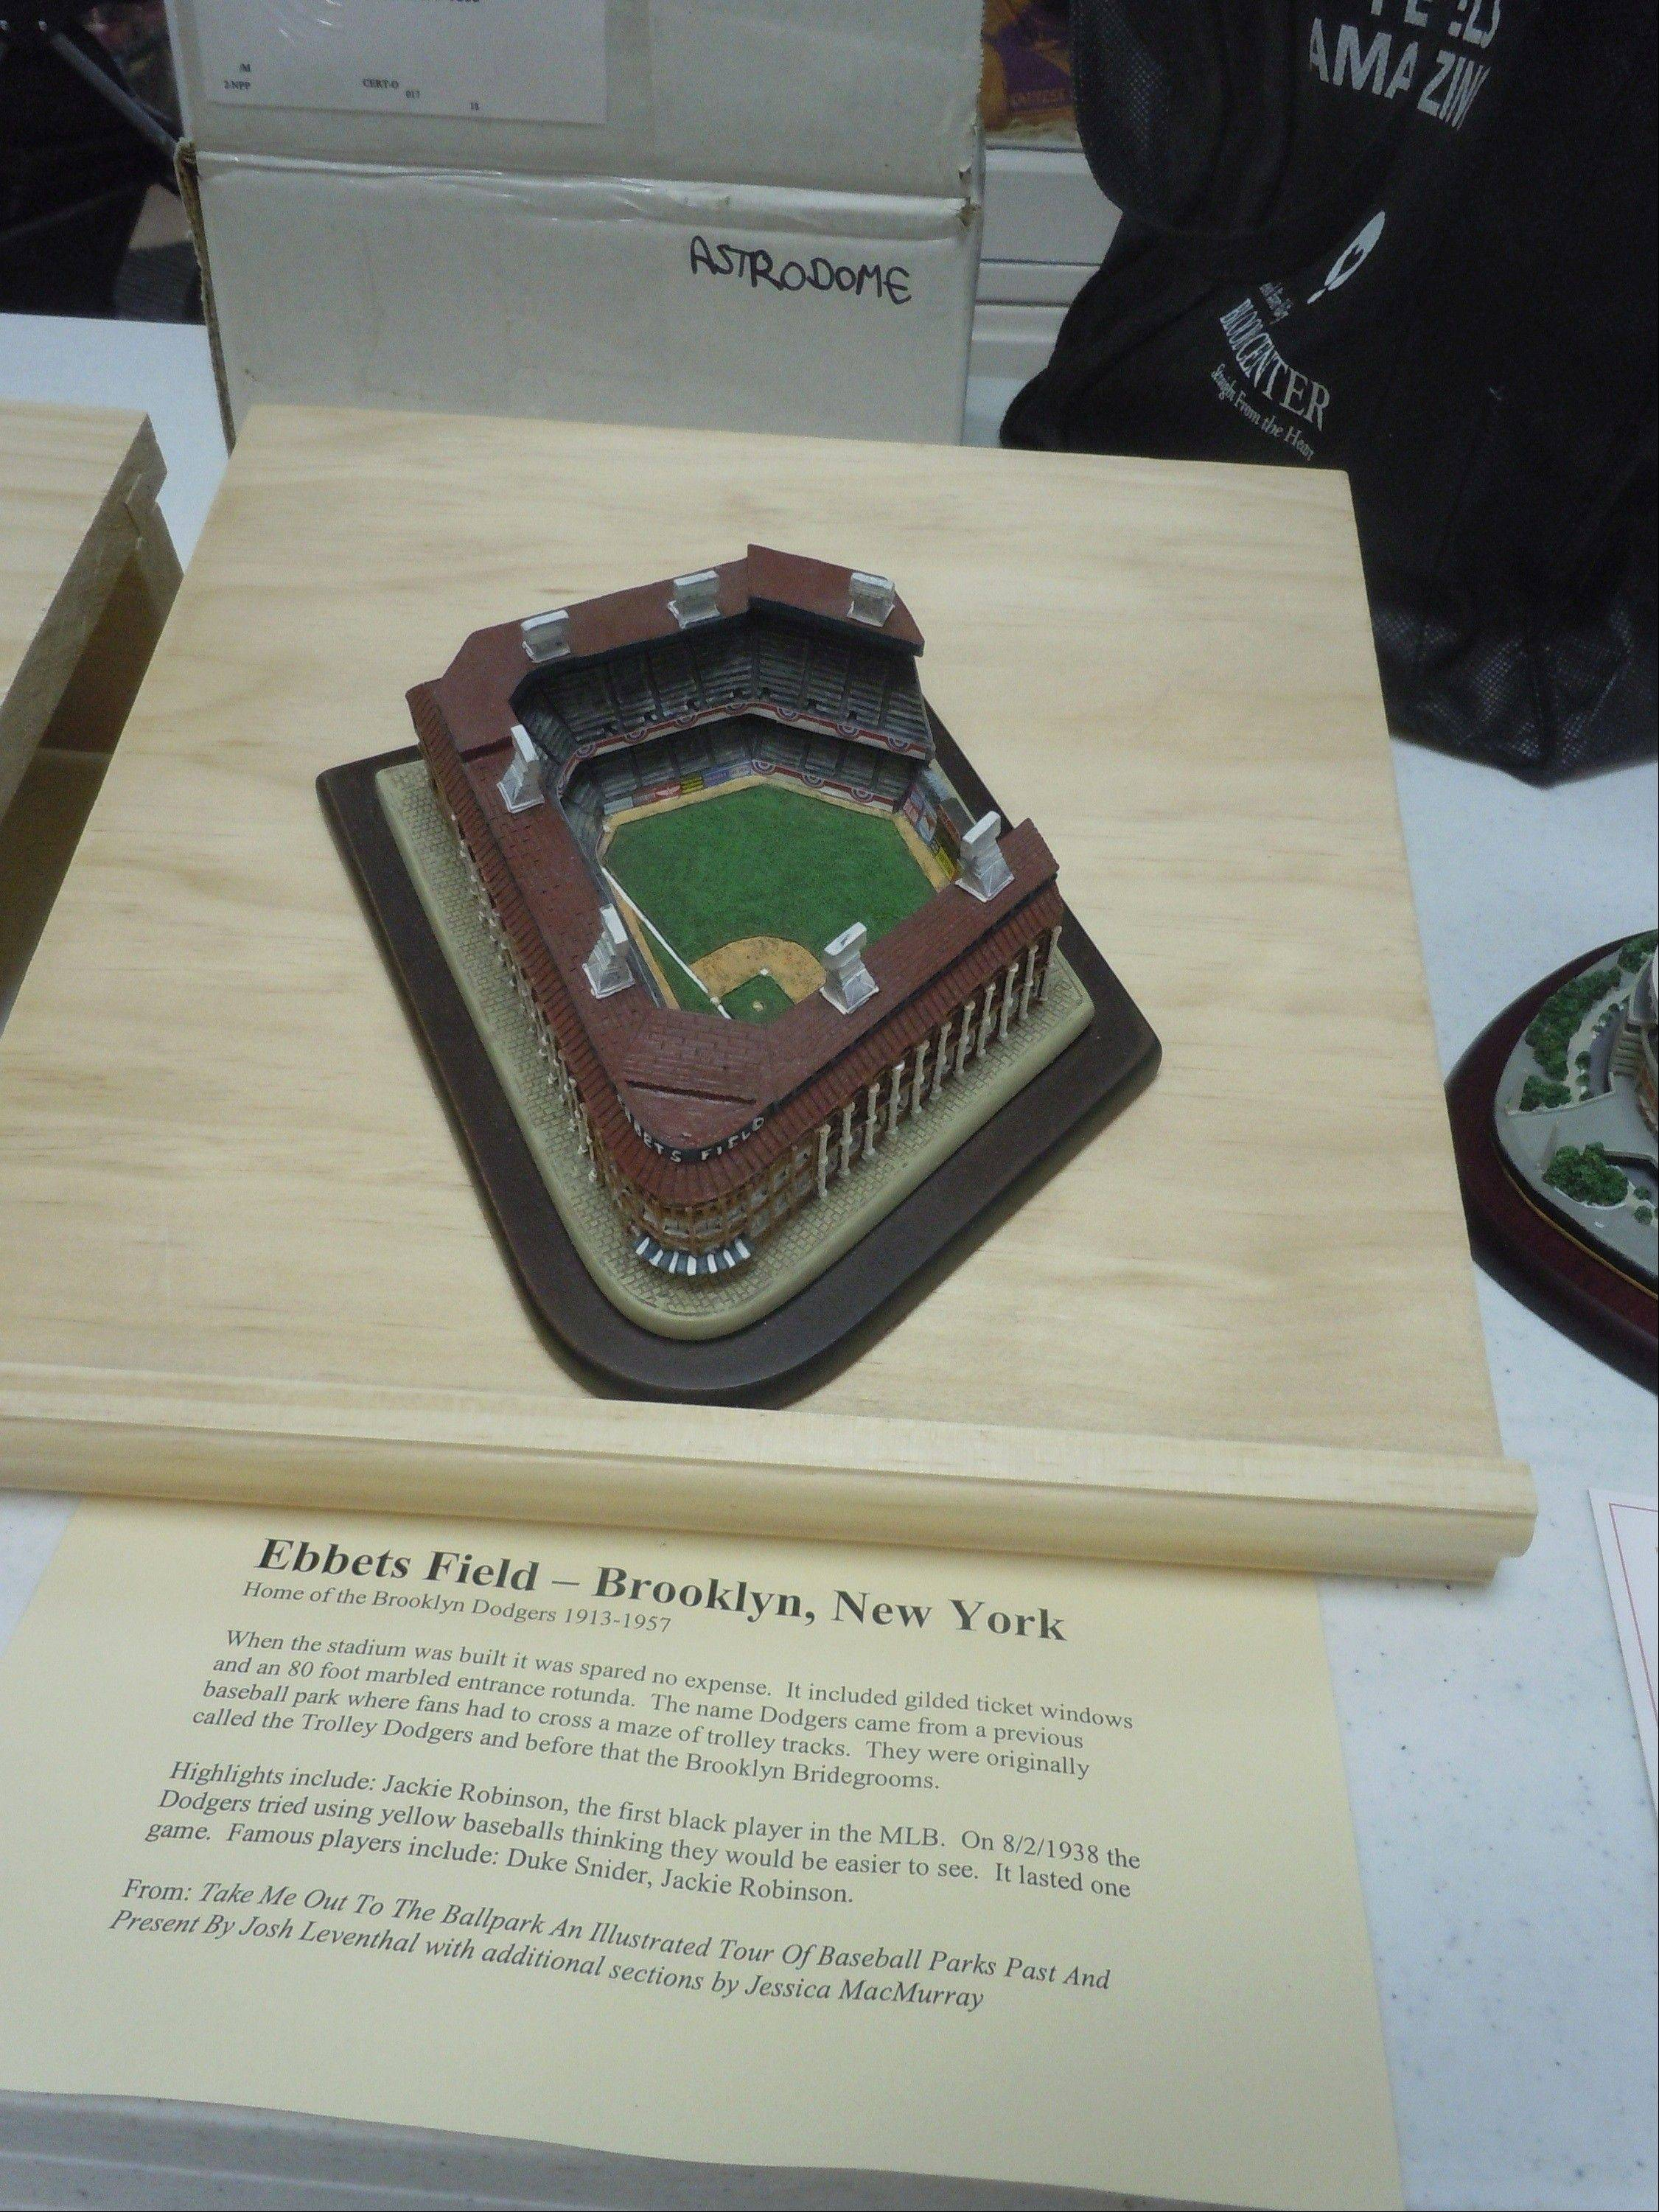 See a collection of more than 50 miniature stadiums, including Ebbets Field, Three Rivers Stadium and Comiskey Park, re-created by the Franklin Mint, during a limited exhibition at the McHenry County Historical Society Museum.